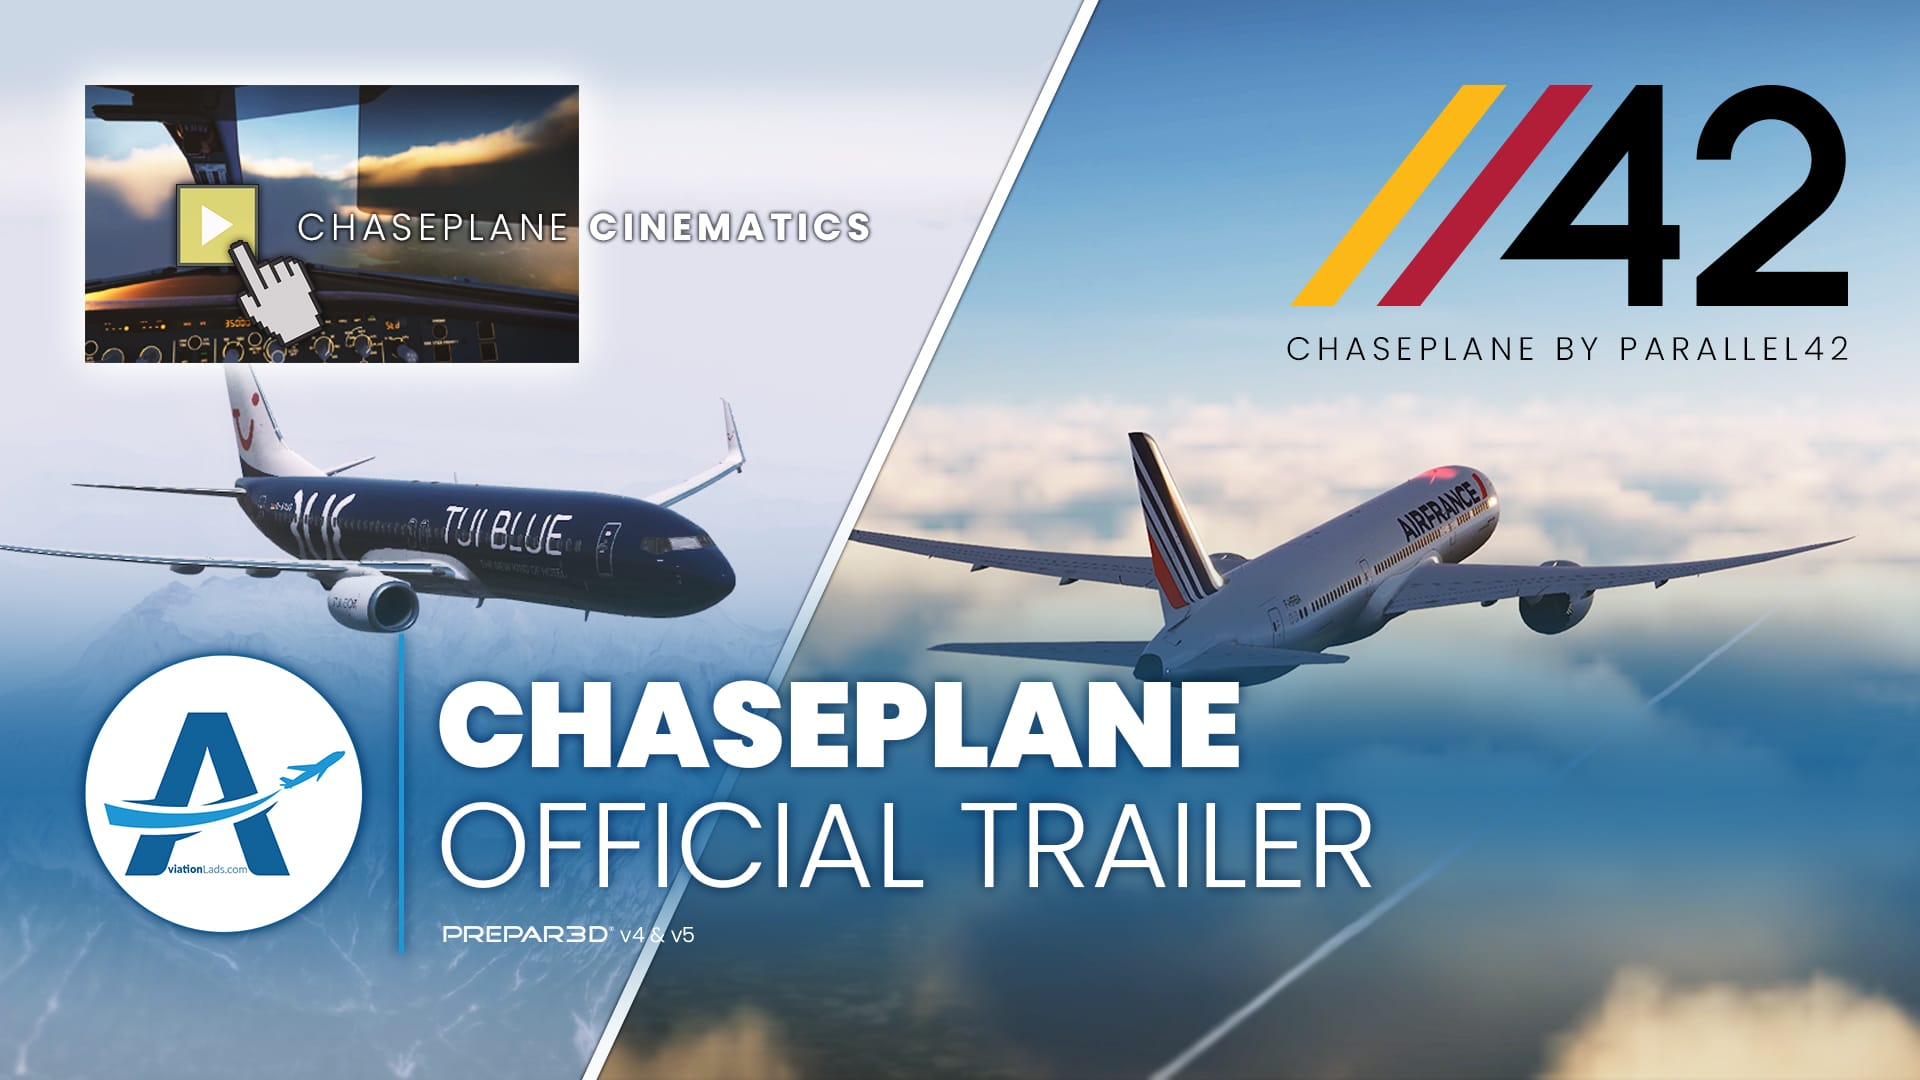 [TRAILER] Parallel 42 – ChasePlane Cinematics